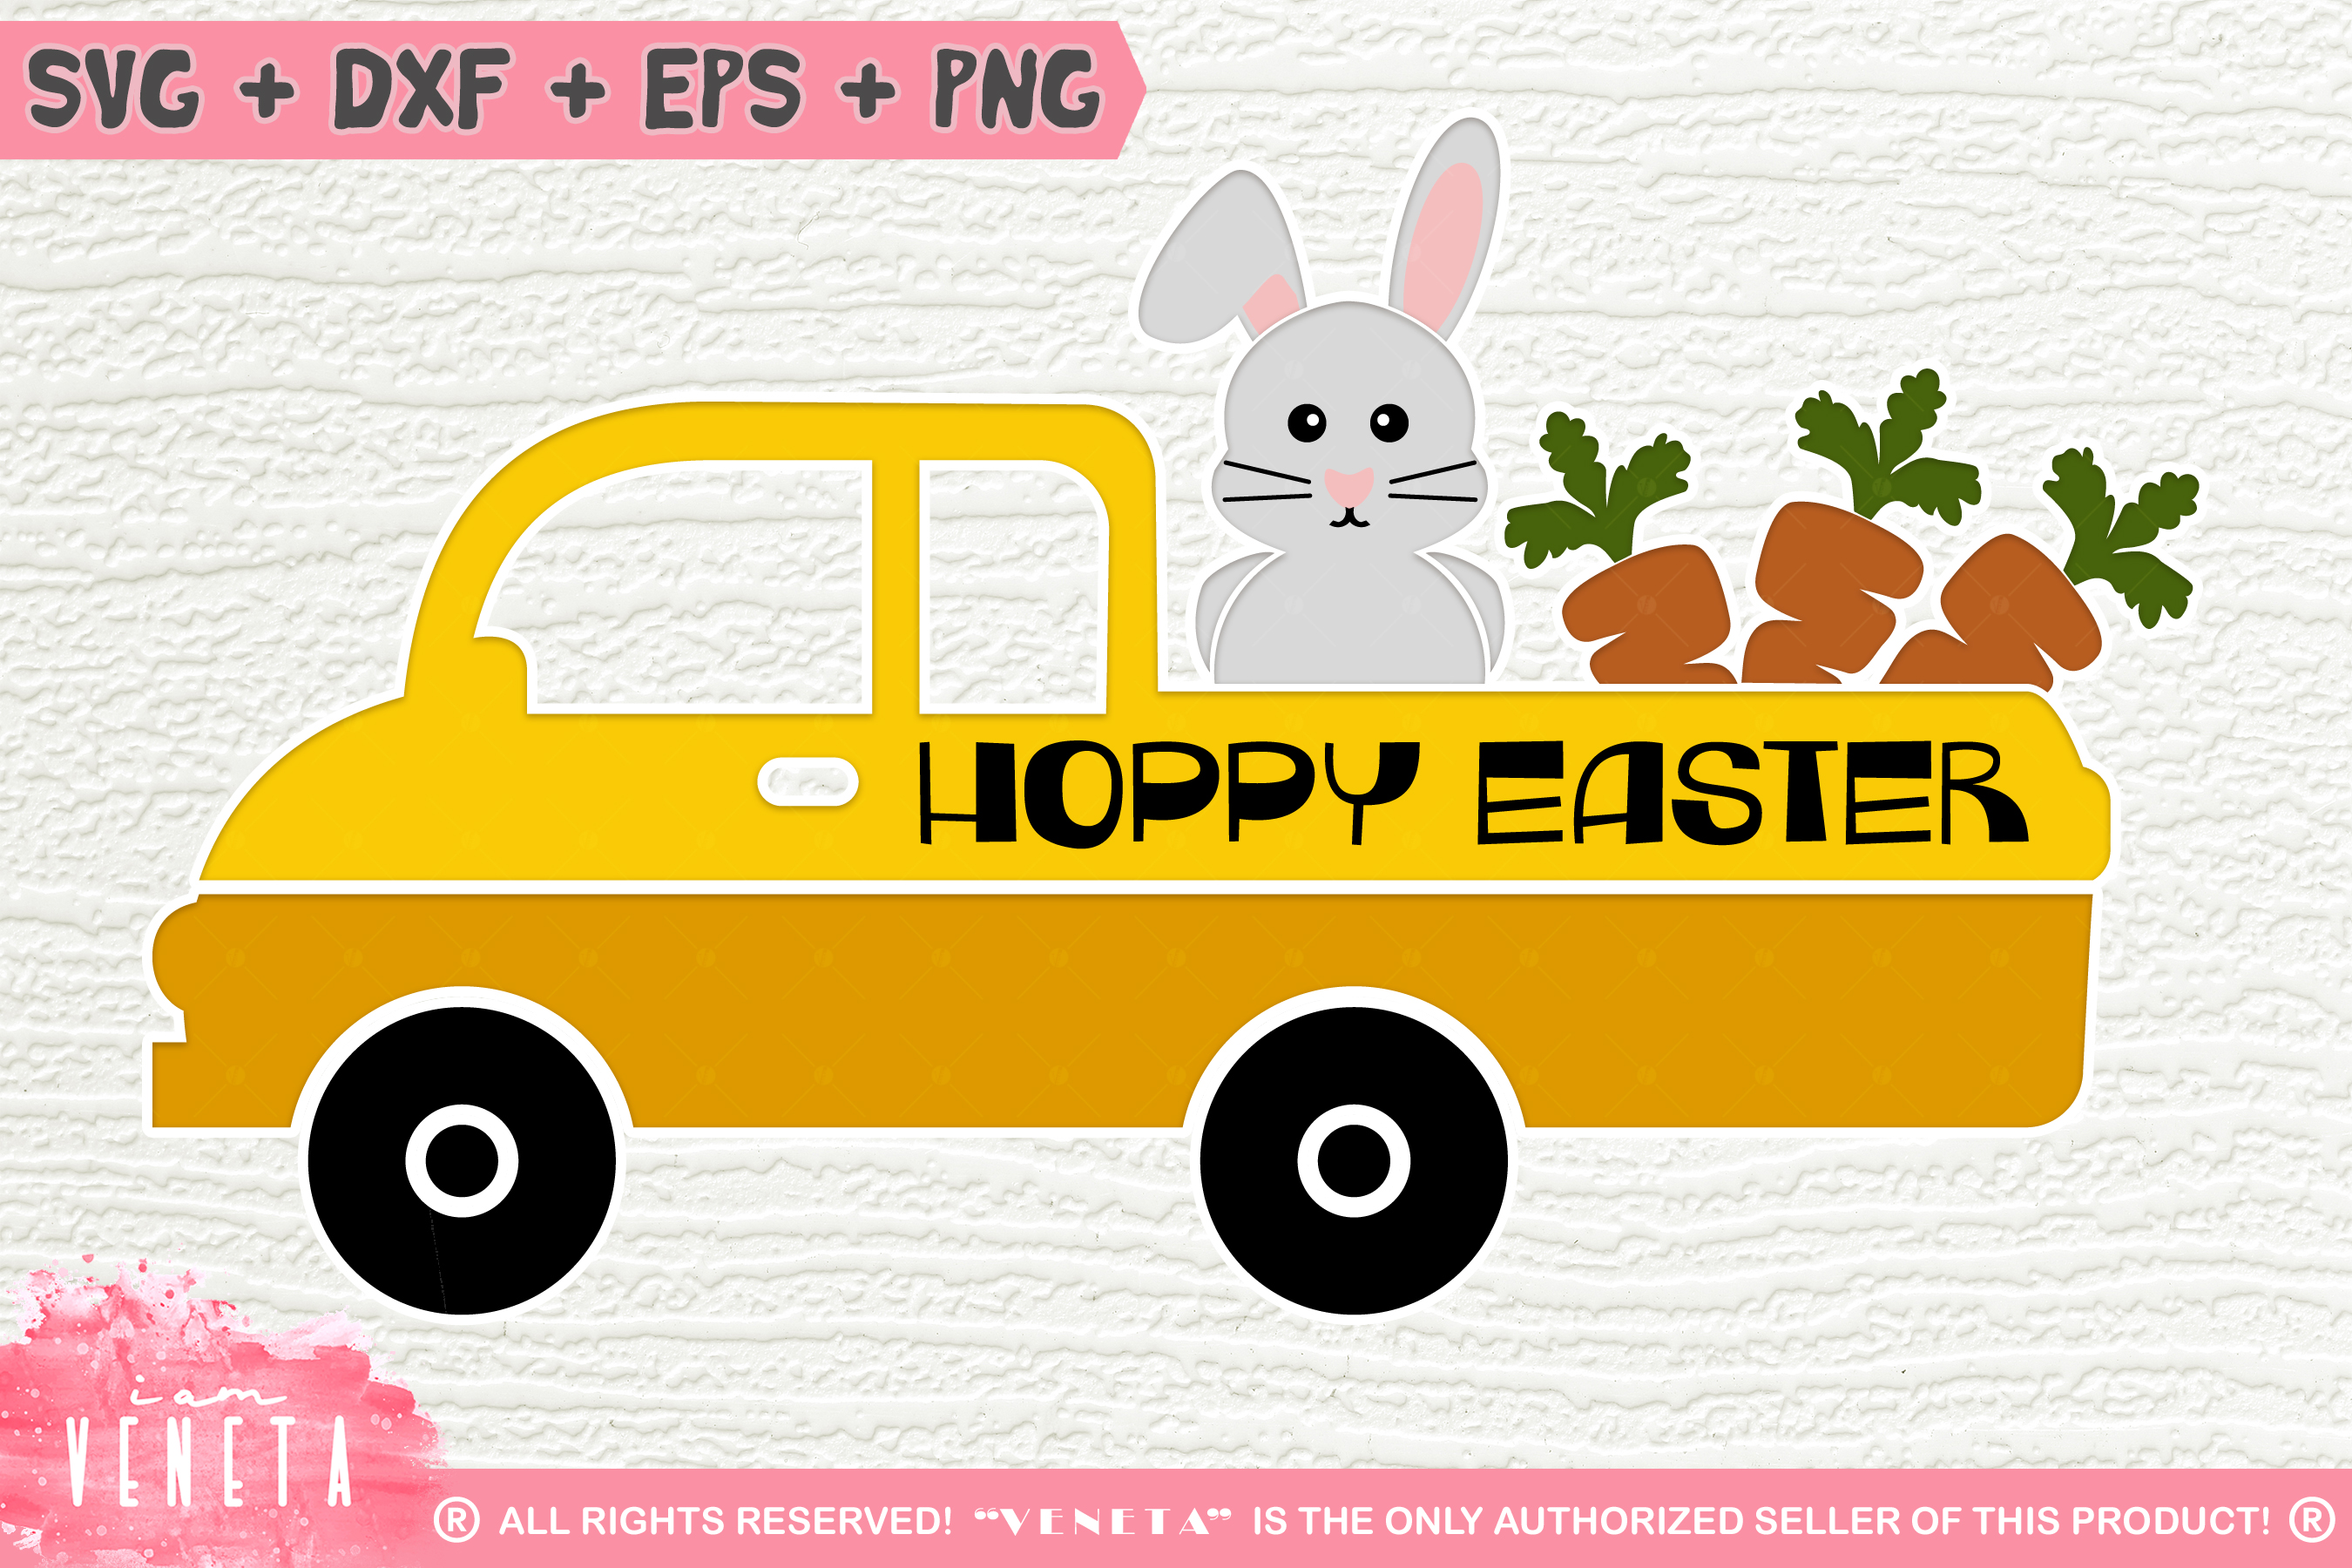 Hoppy Easter| Bunny and Carrots | SVG, DXF, Cutting Files example image 1